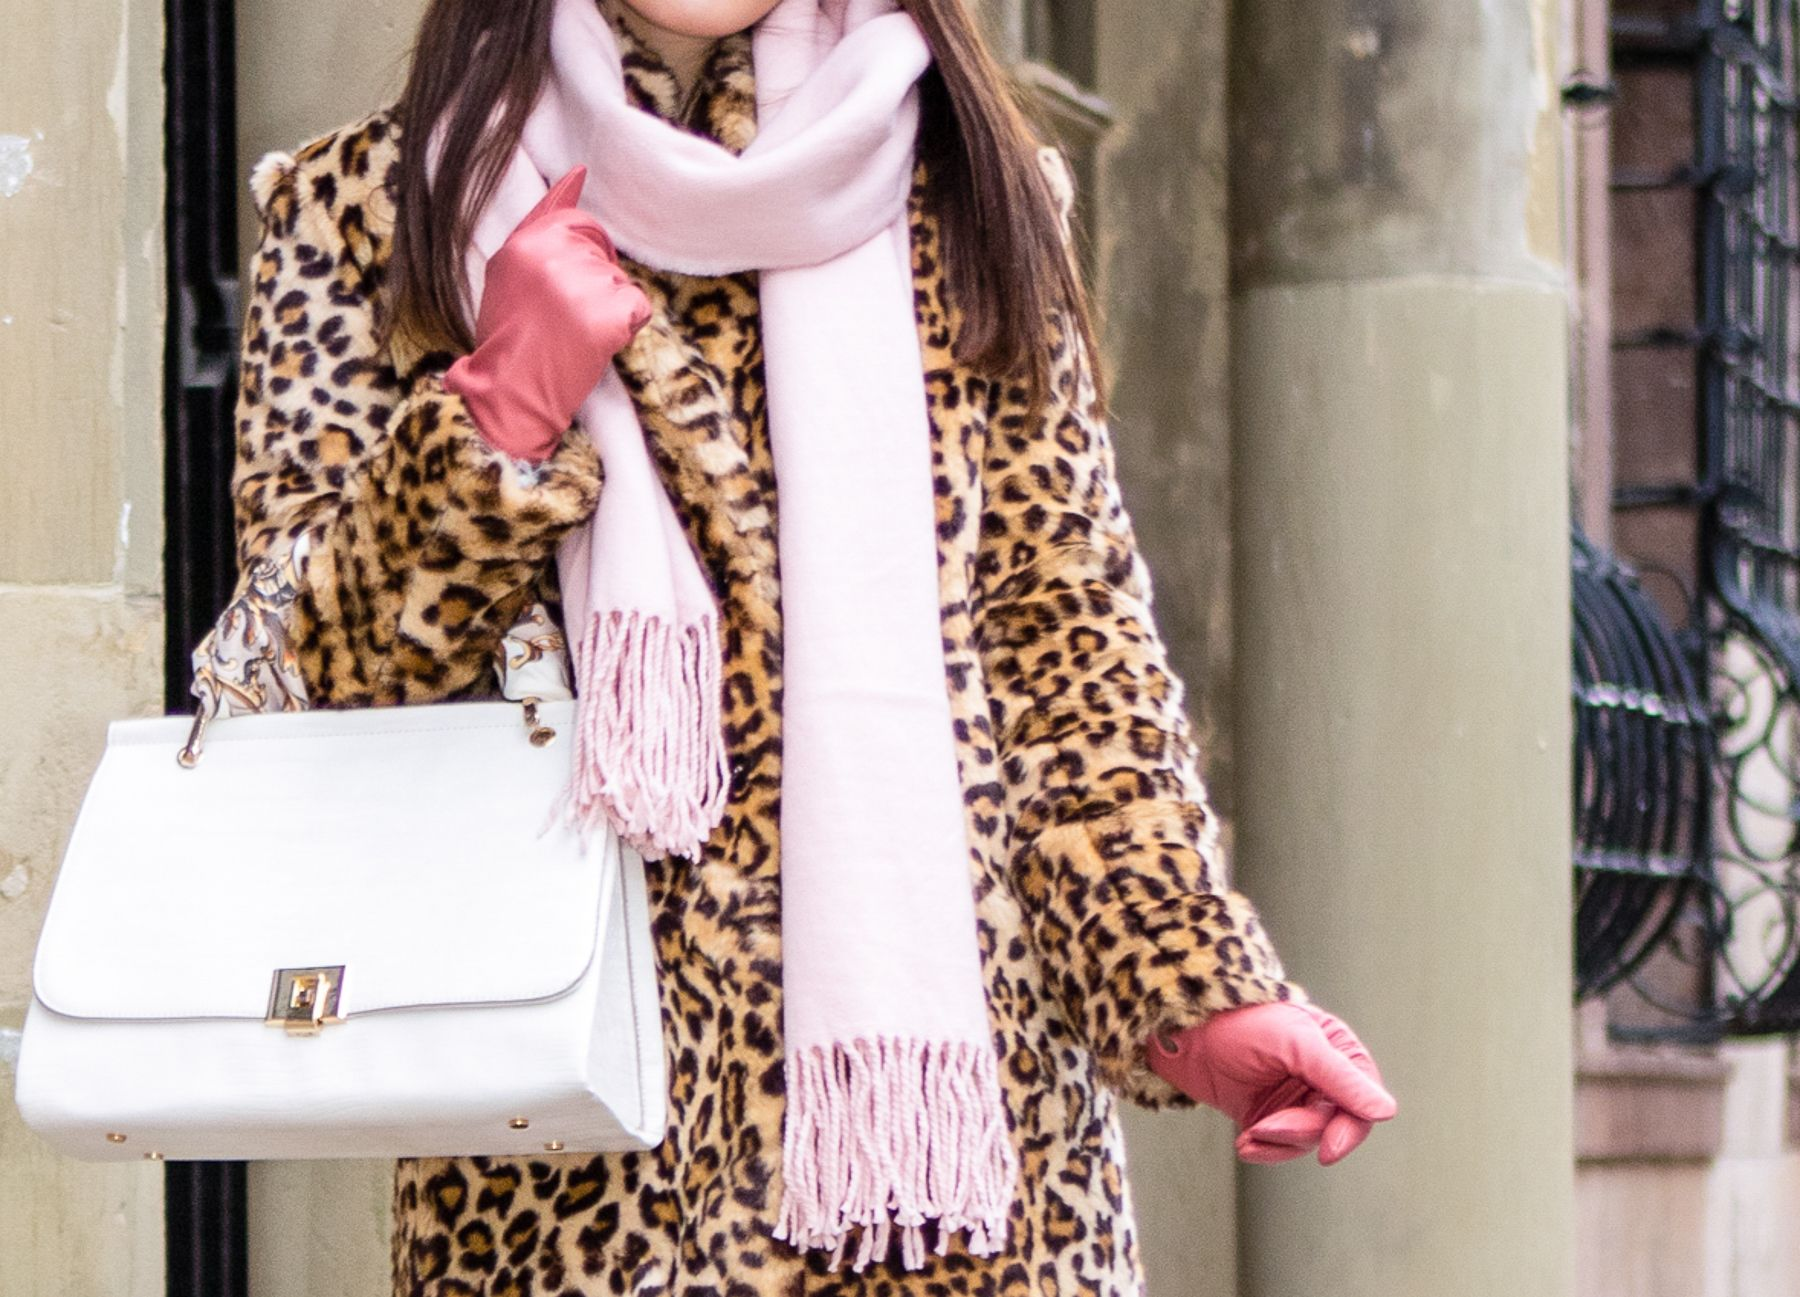 Outfit details: leopard fake fur coat by Zara, pink scarf by ASOS, pink leather gloves by H&M, white tote bag by Zara http://www.thefashionrose.com/2016/12/make-a-statement-this-winter-wearing-a-leopard-coat.html